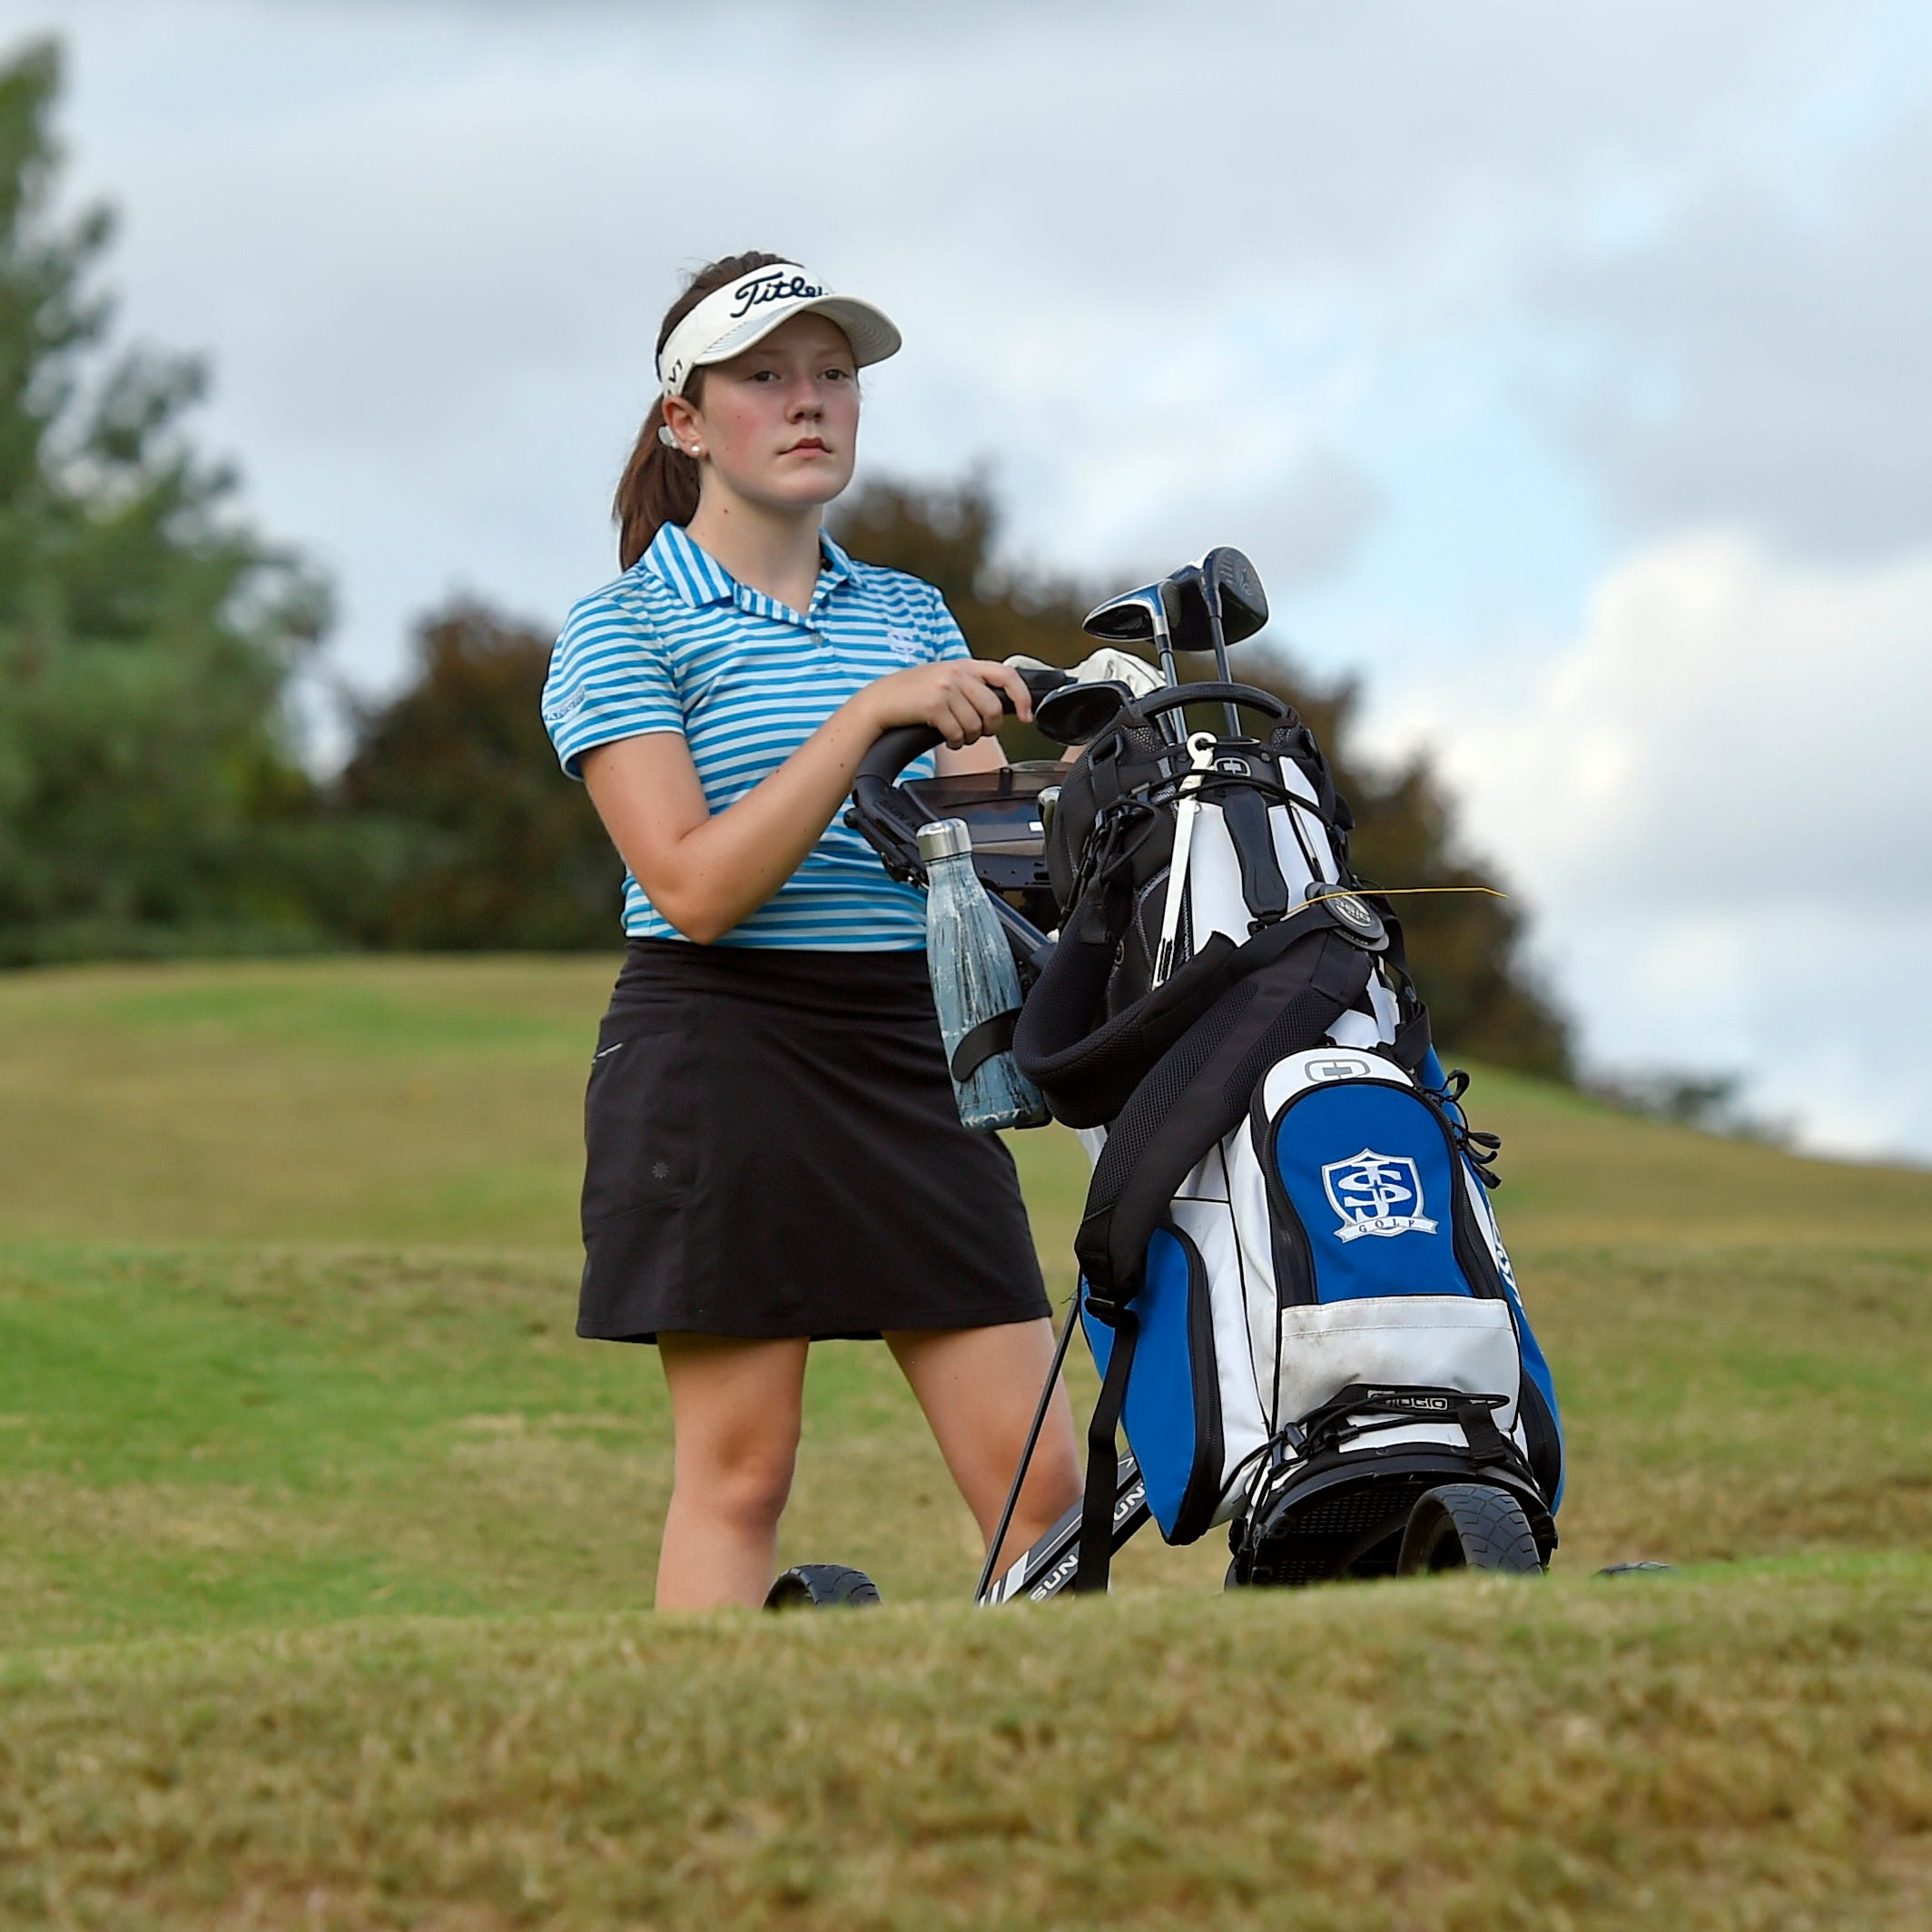 Two-time cancer survivor brings life to St. Joe's girls golf team